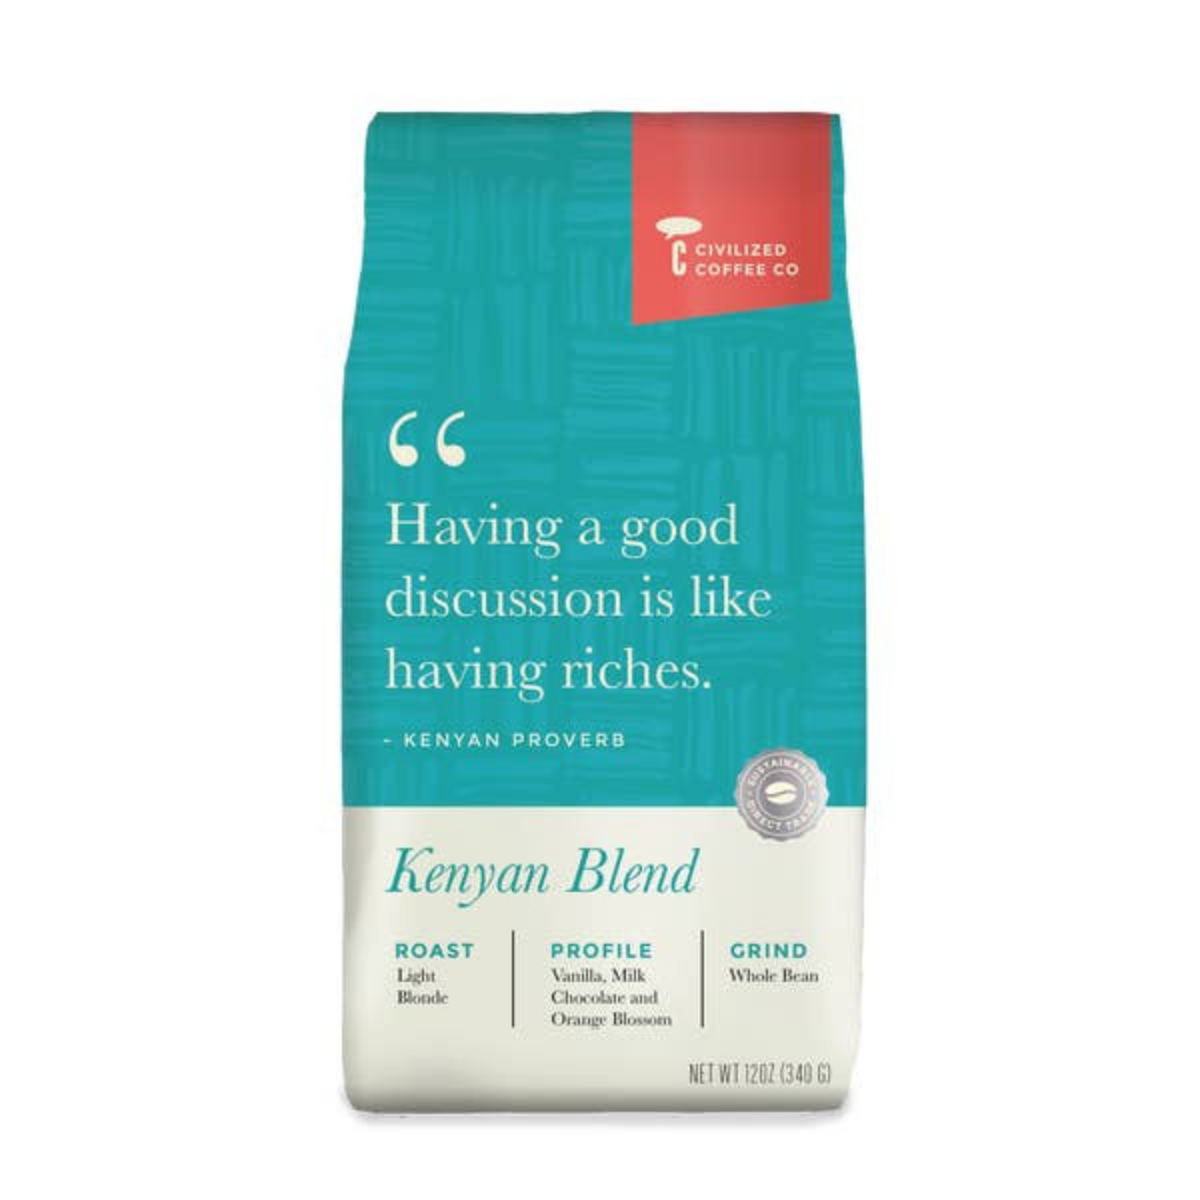 Kenyan Blonde Roast (Whole Bean Coffee) - Offensive Mug